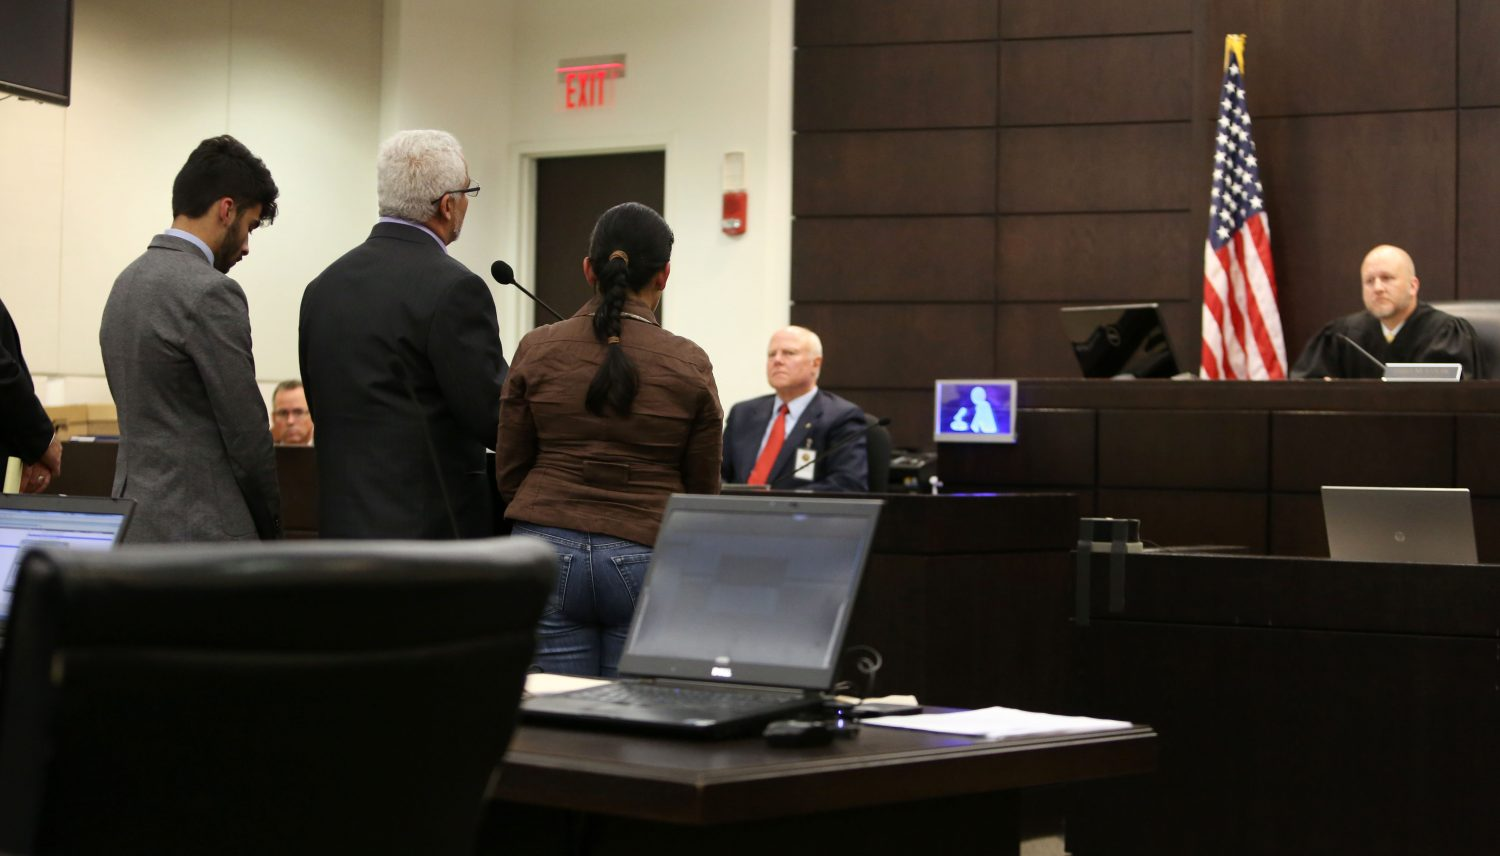 Carlos and Claudia Aguilar, the parents of Christian Aguilar, and their son Alex speak to Circuit Court Judge James Colaw before Pedro Bravo's sentencing for the first degree murder of Christian in courtroom 1B of the Alachua County Criminal Justice Center Friday, August 15, 2014.  (Doug Finger/The Gainesville Sun/Pool)